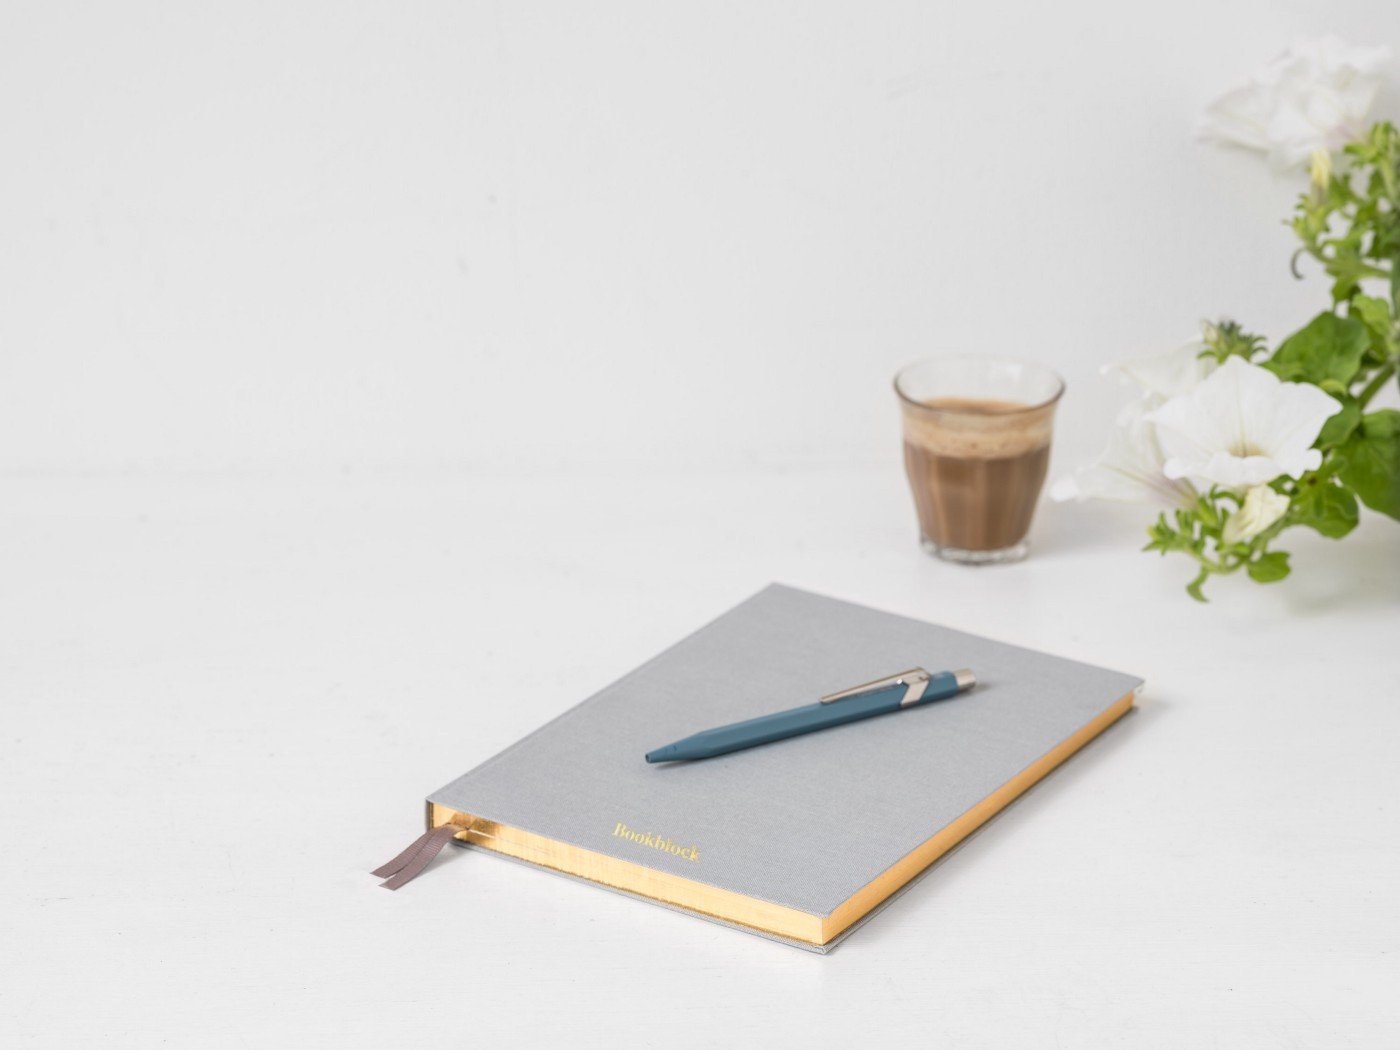 An image of a notebook with a pen on top of it and a glass of coffee next to it.